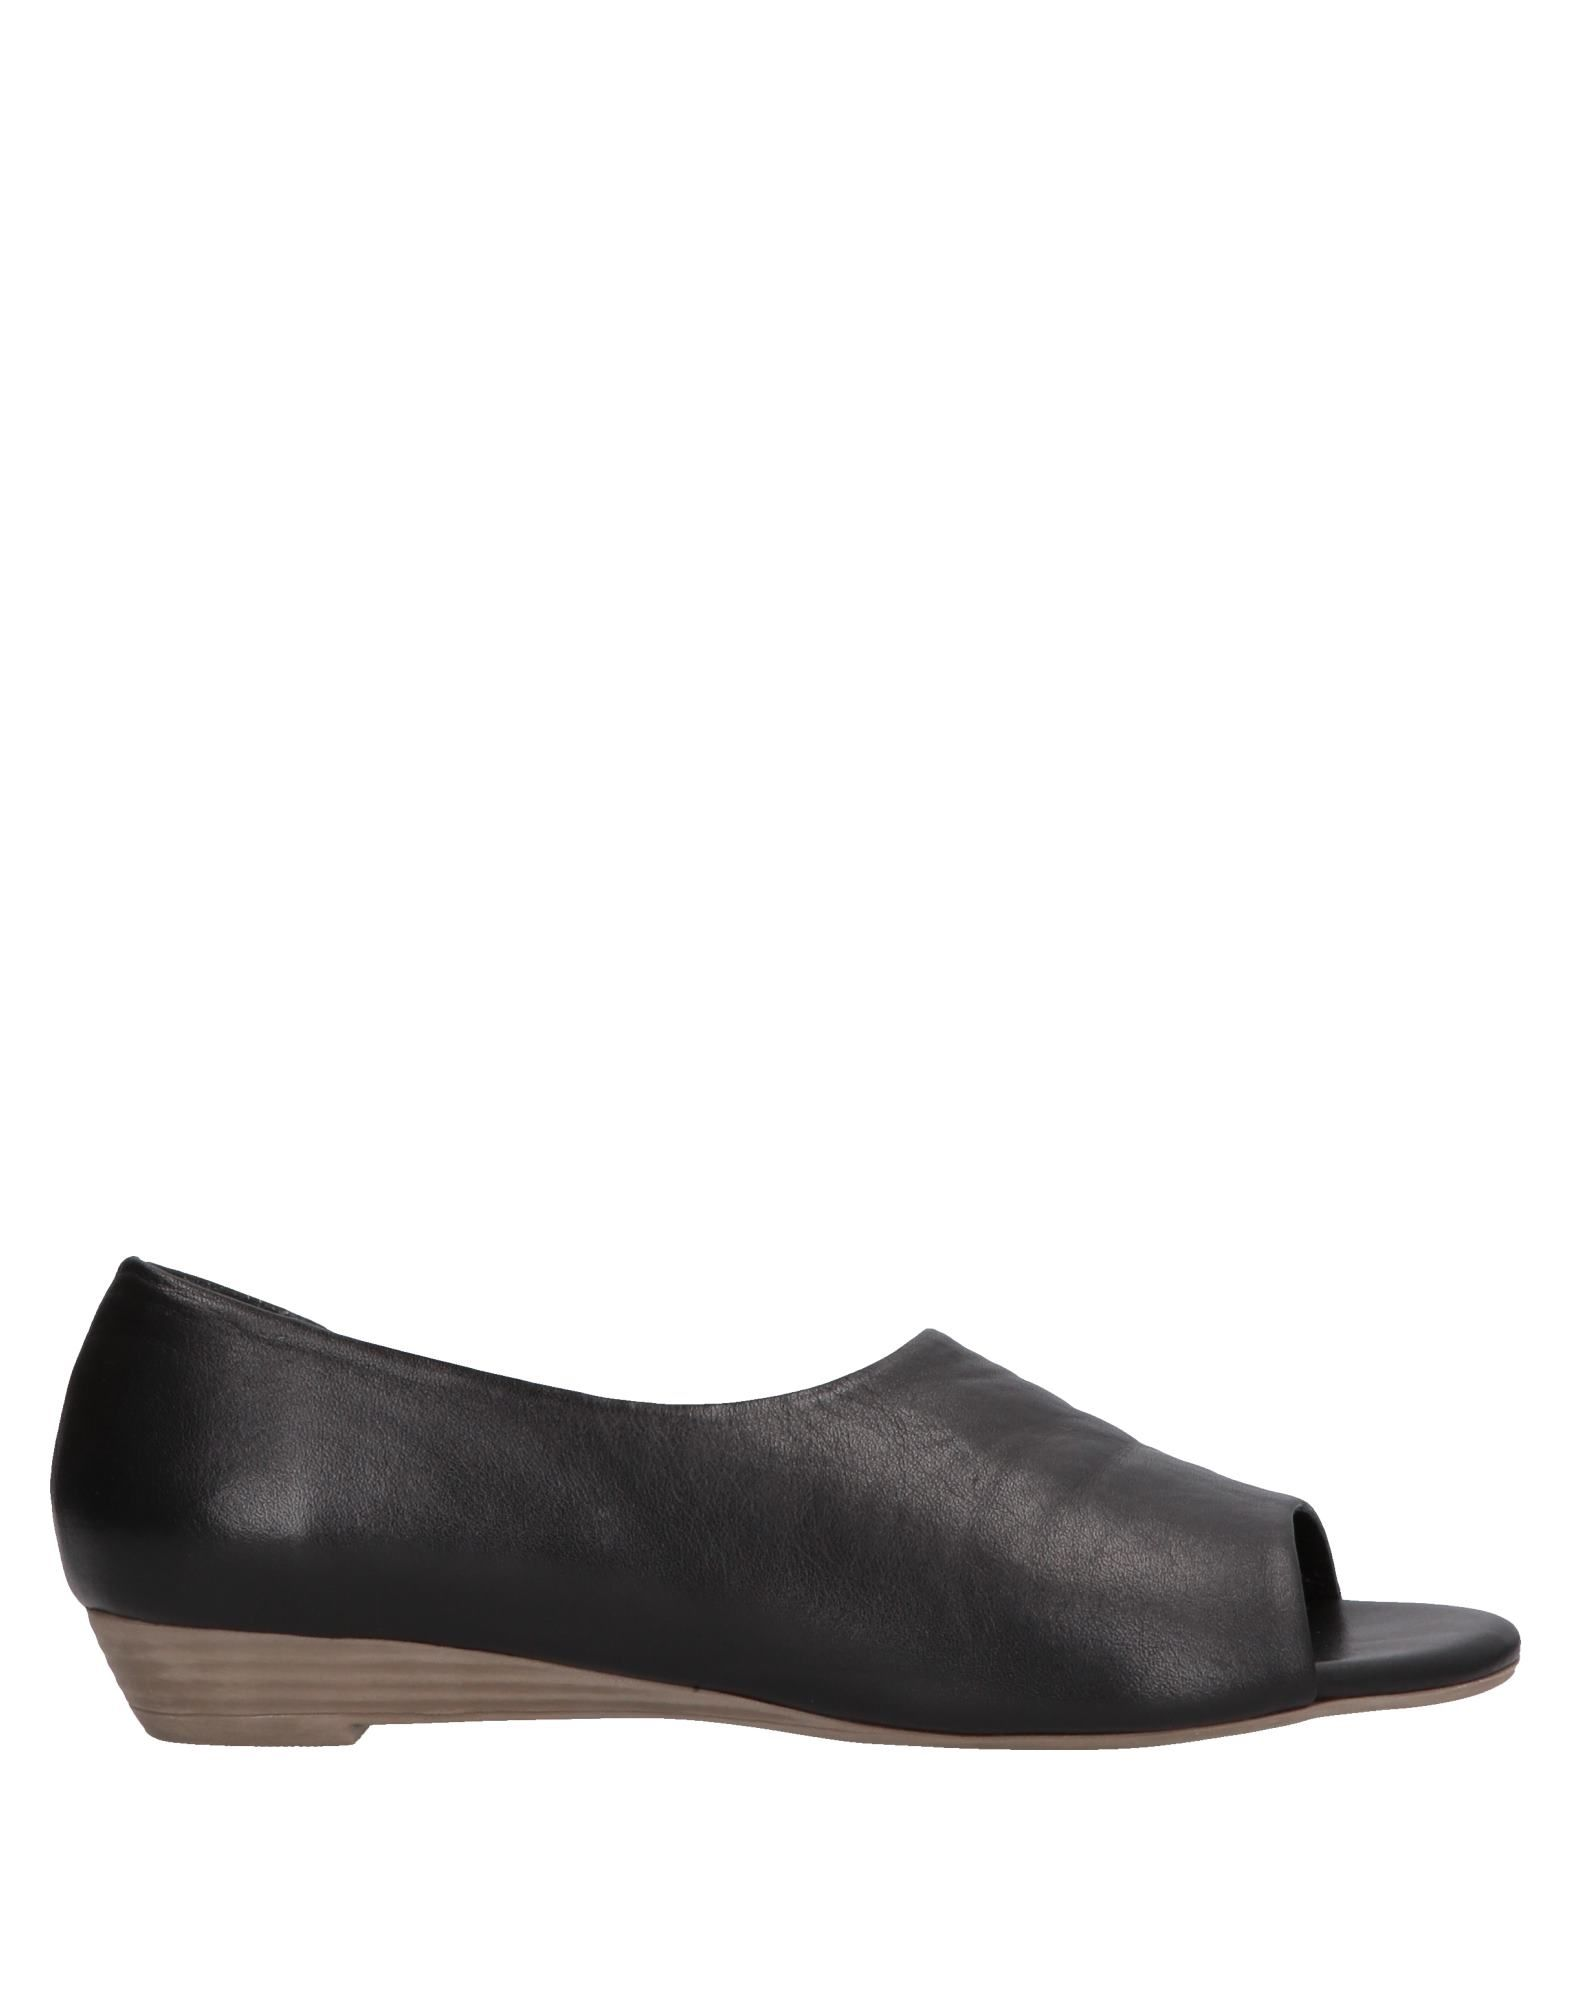 BUENO Loafers. leather, no appliqués, solid color, open toe, flat, leather lining, rubber sole, contains non-textile parts of animal origin. Soft Leather